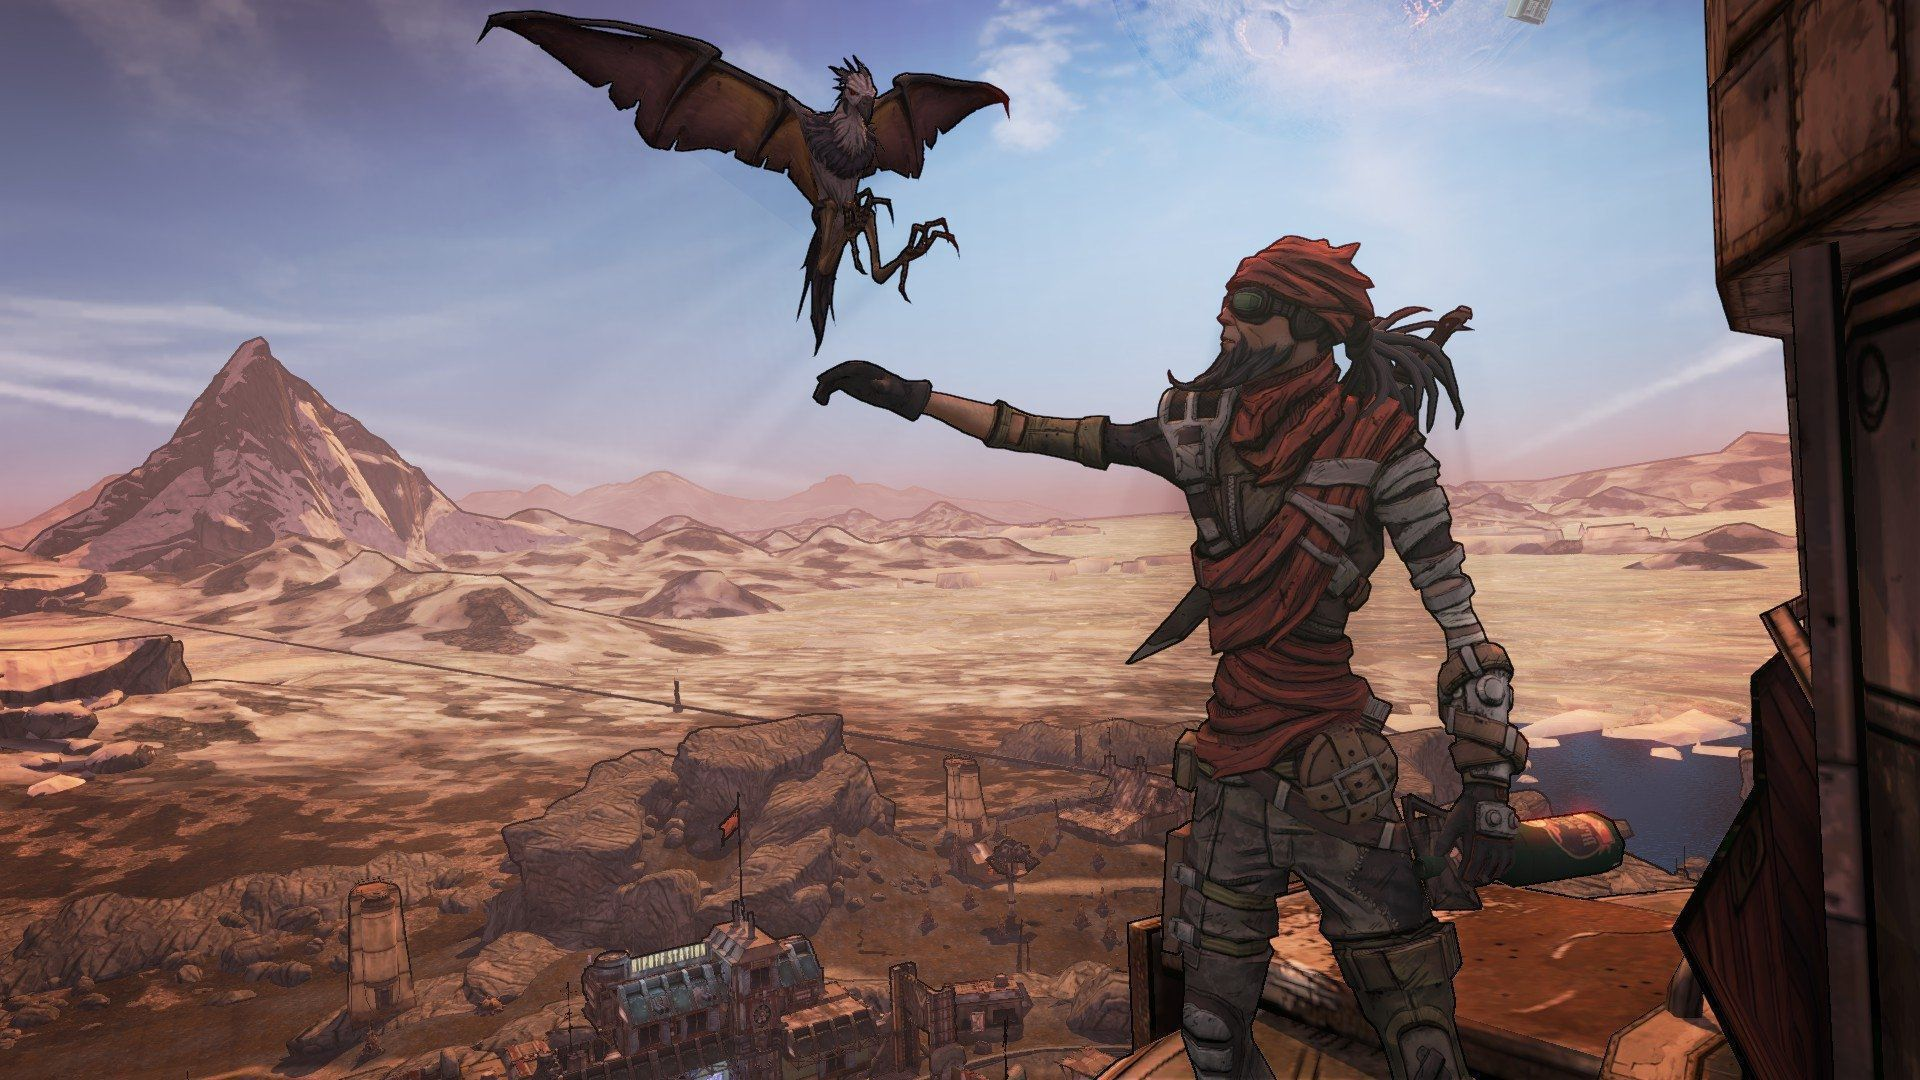 Borderlands 2 High Quality Wallpapers